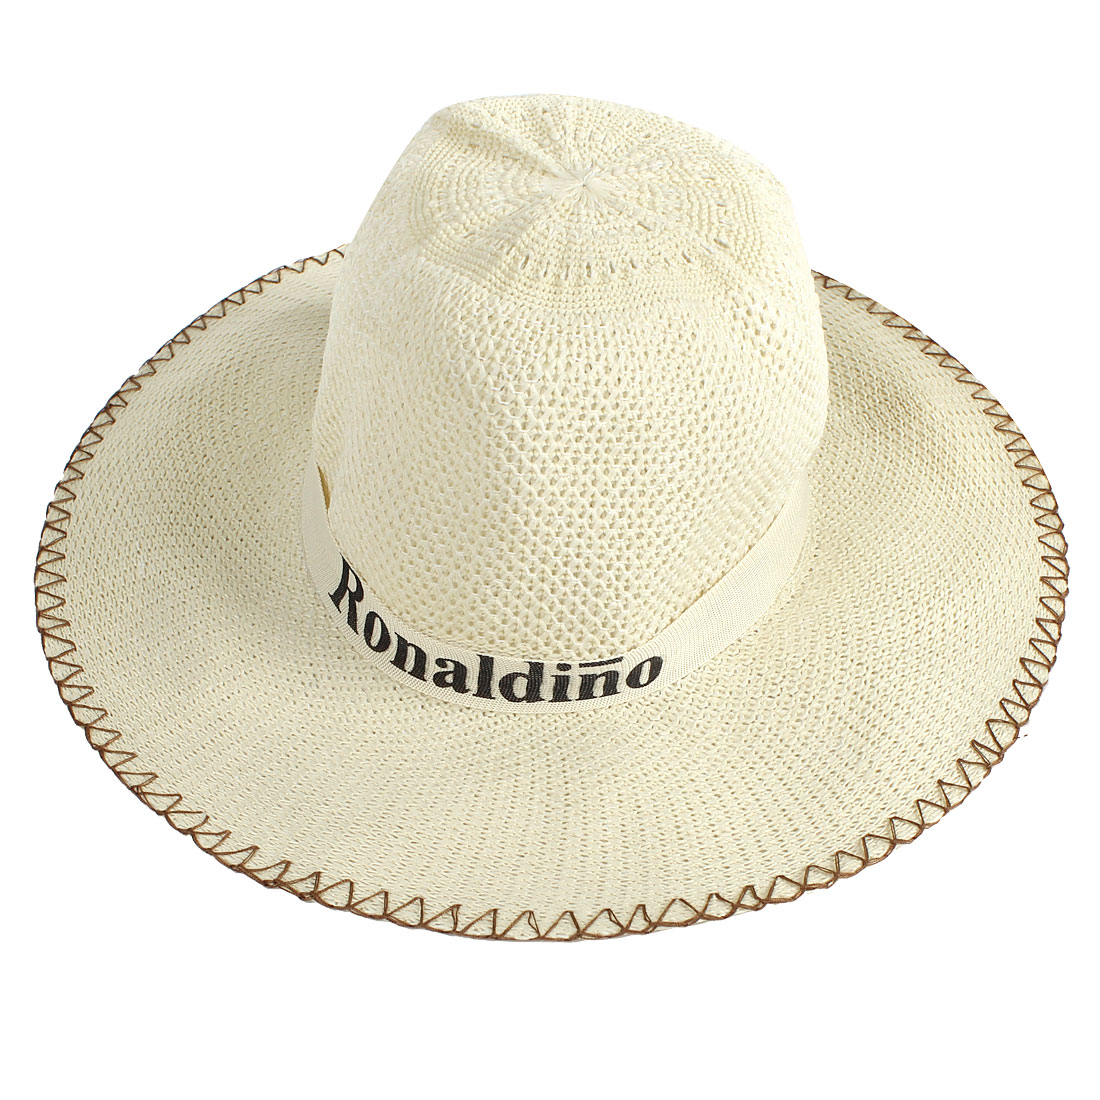 Adjustable Chin Strap Winding Cowboy Hat Gift Beige for Man